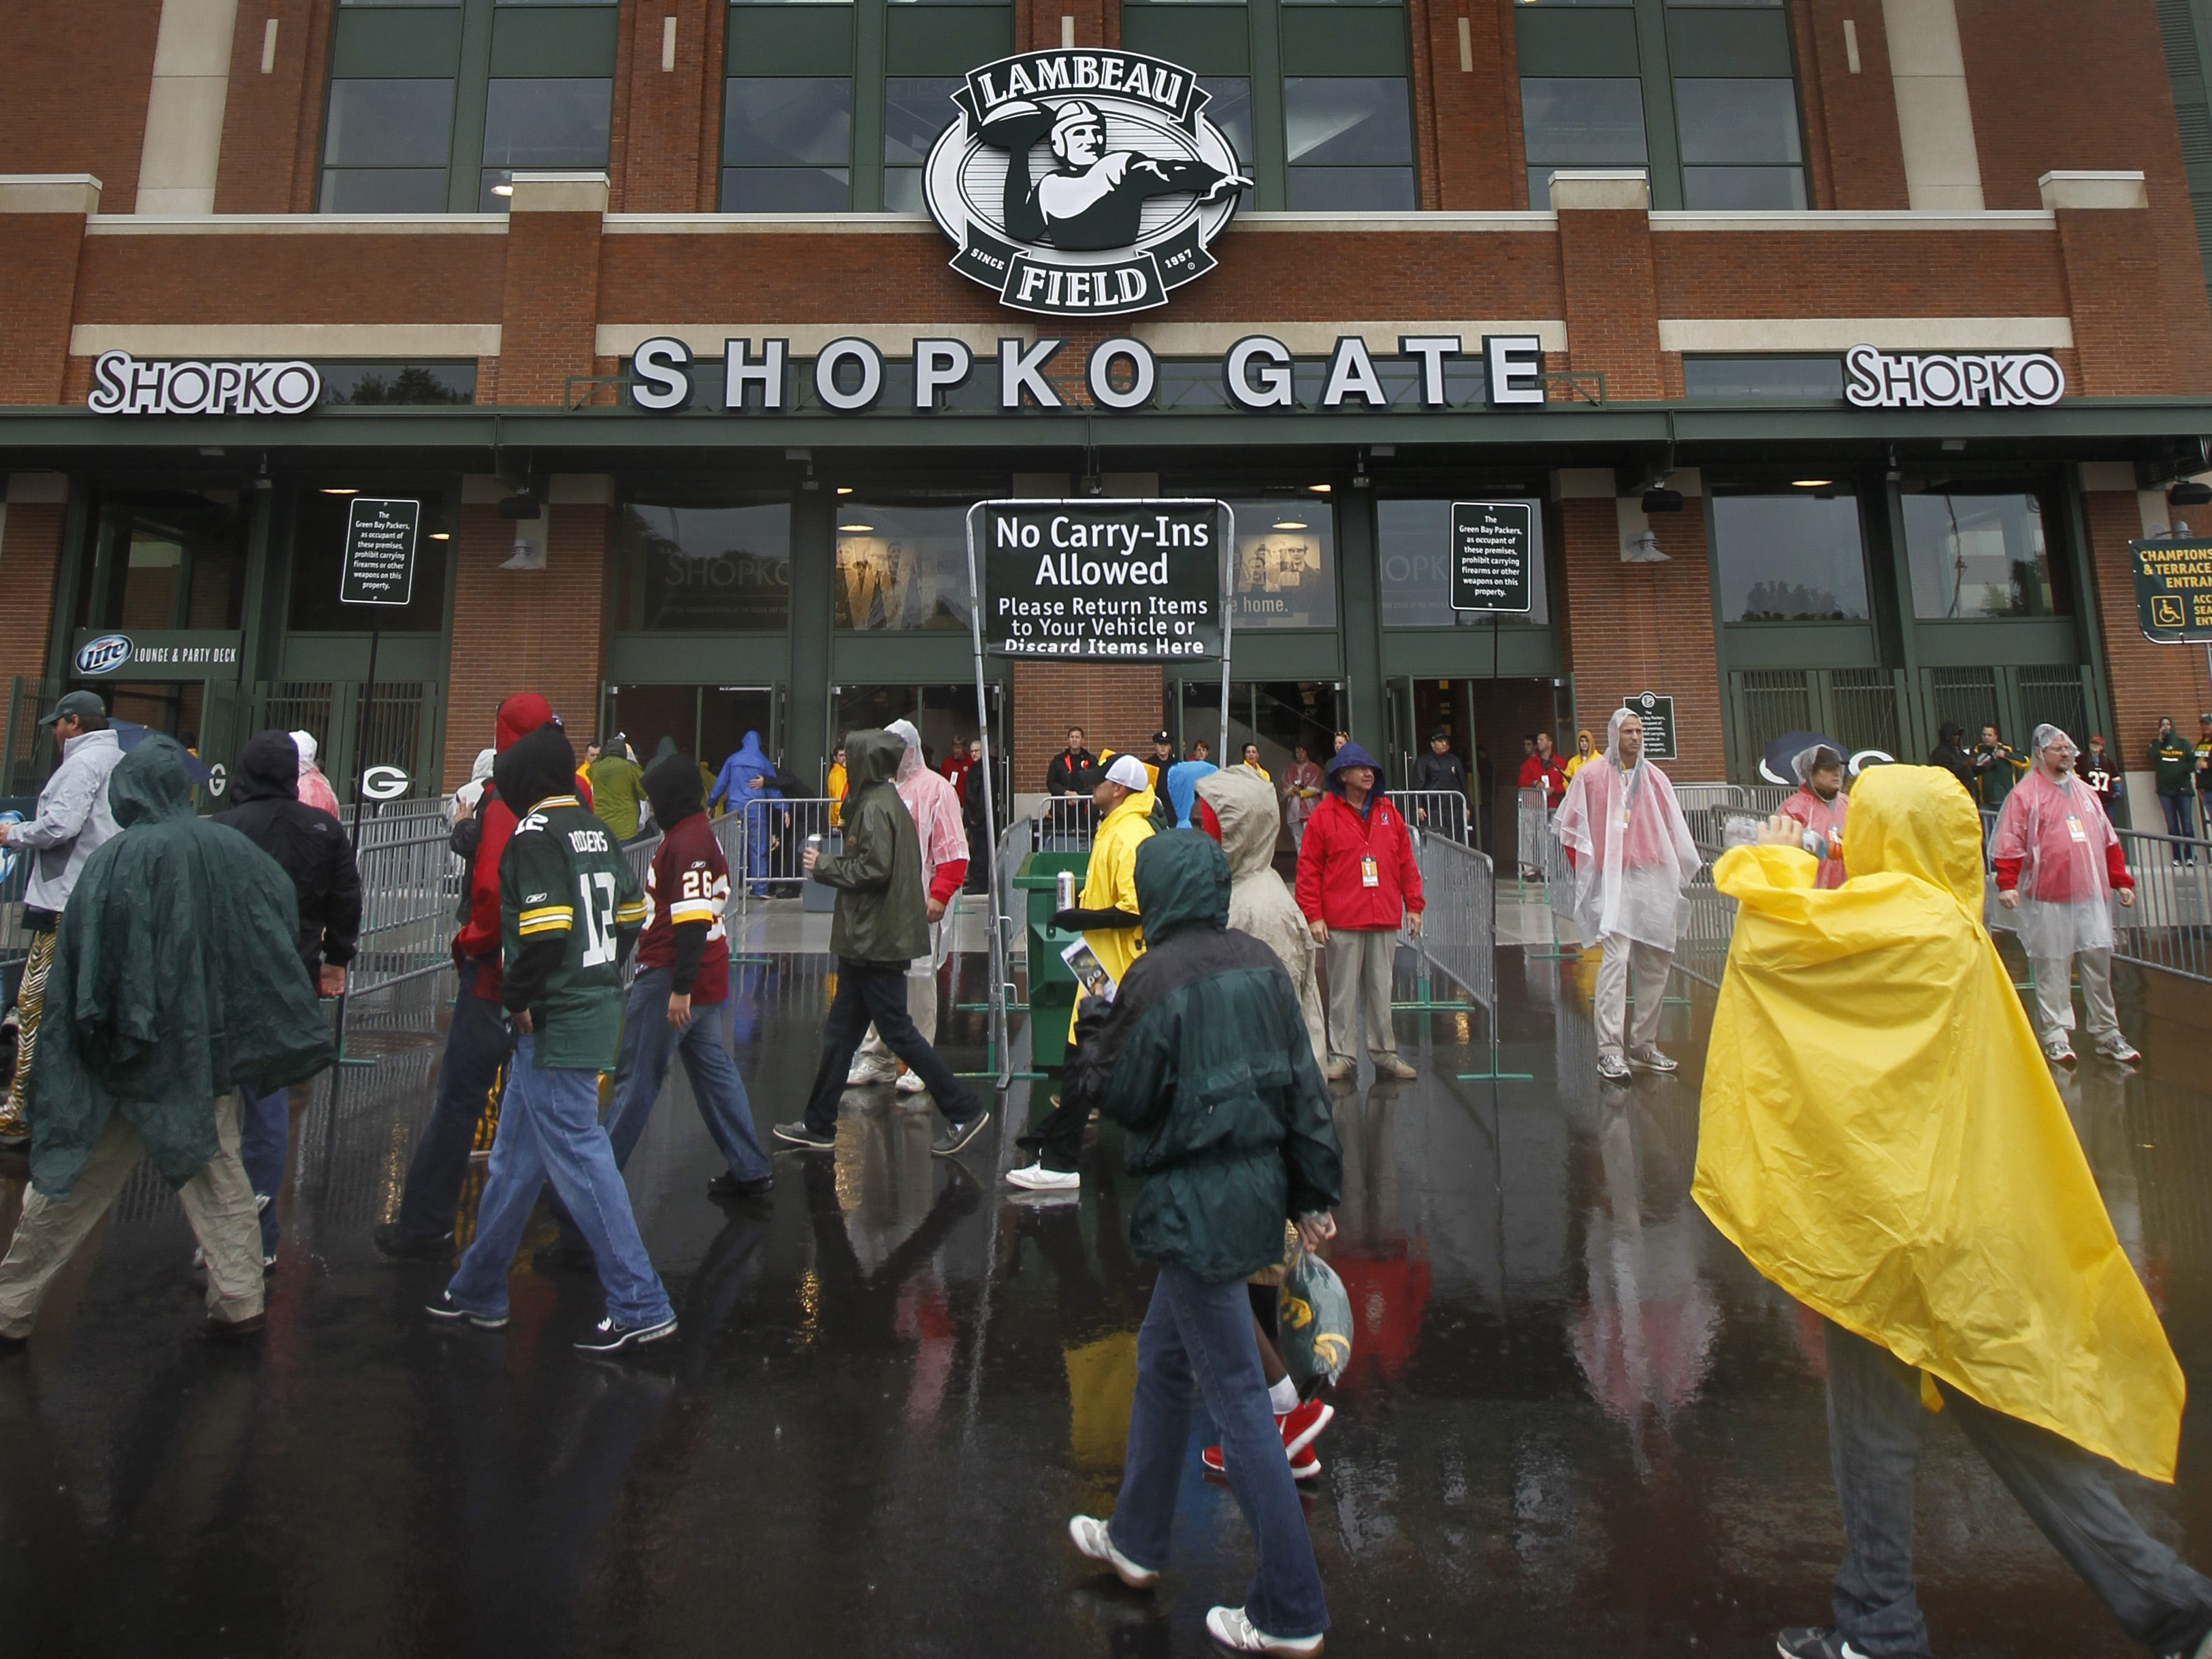 Fans enter the new Shopko gate before the Green Bay Packers played the Washington Redskins at Lambeau Field on September 15, 2013. Shopko has sponsored the gate since the Lambeau Field renovation was completed earlier that year.